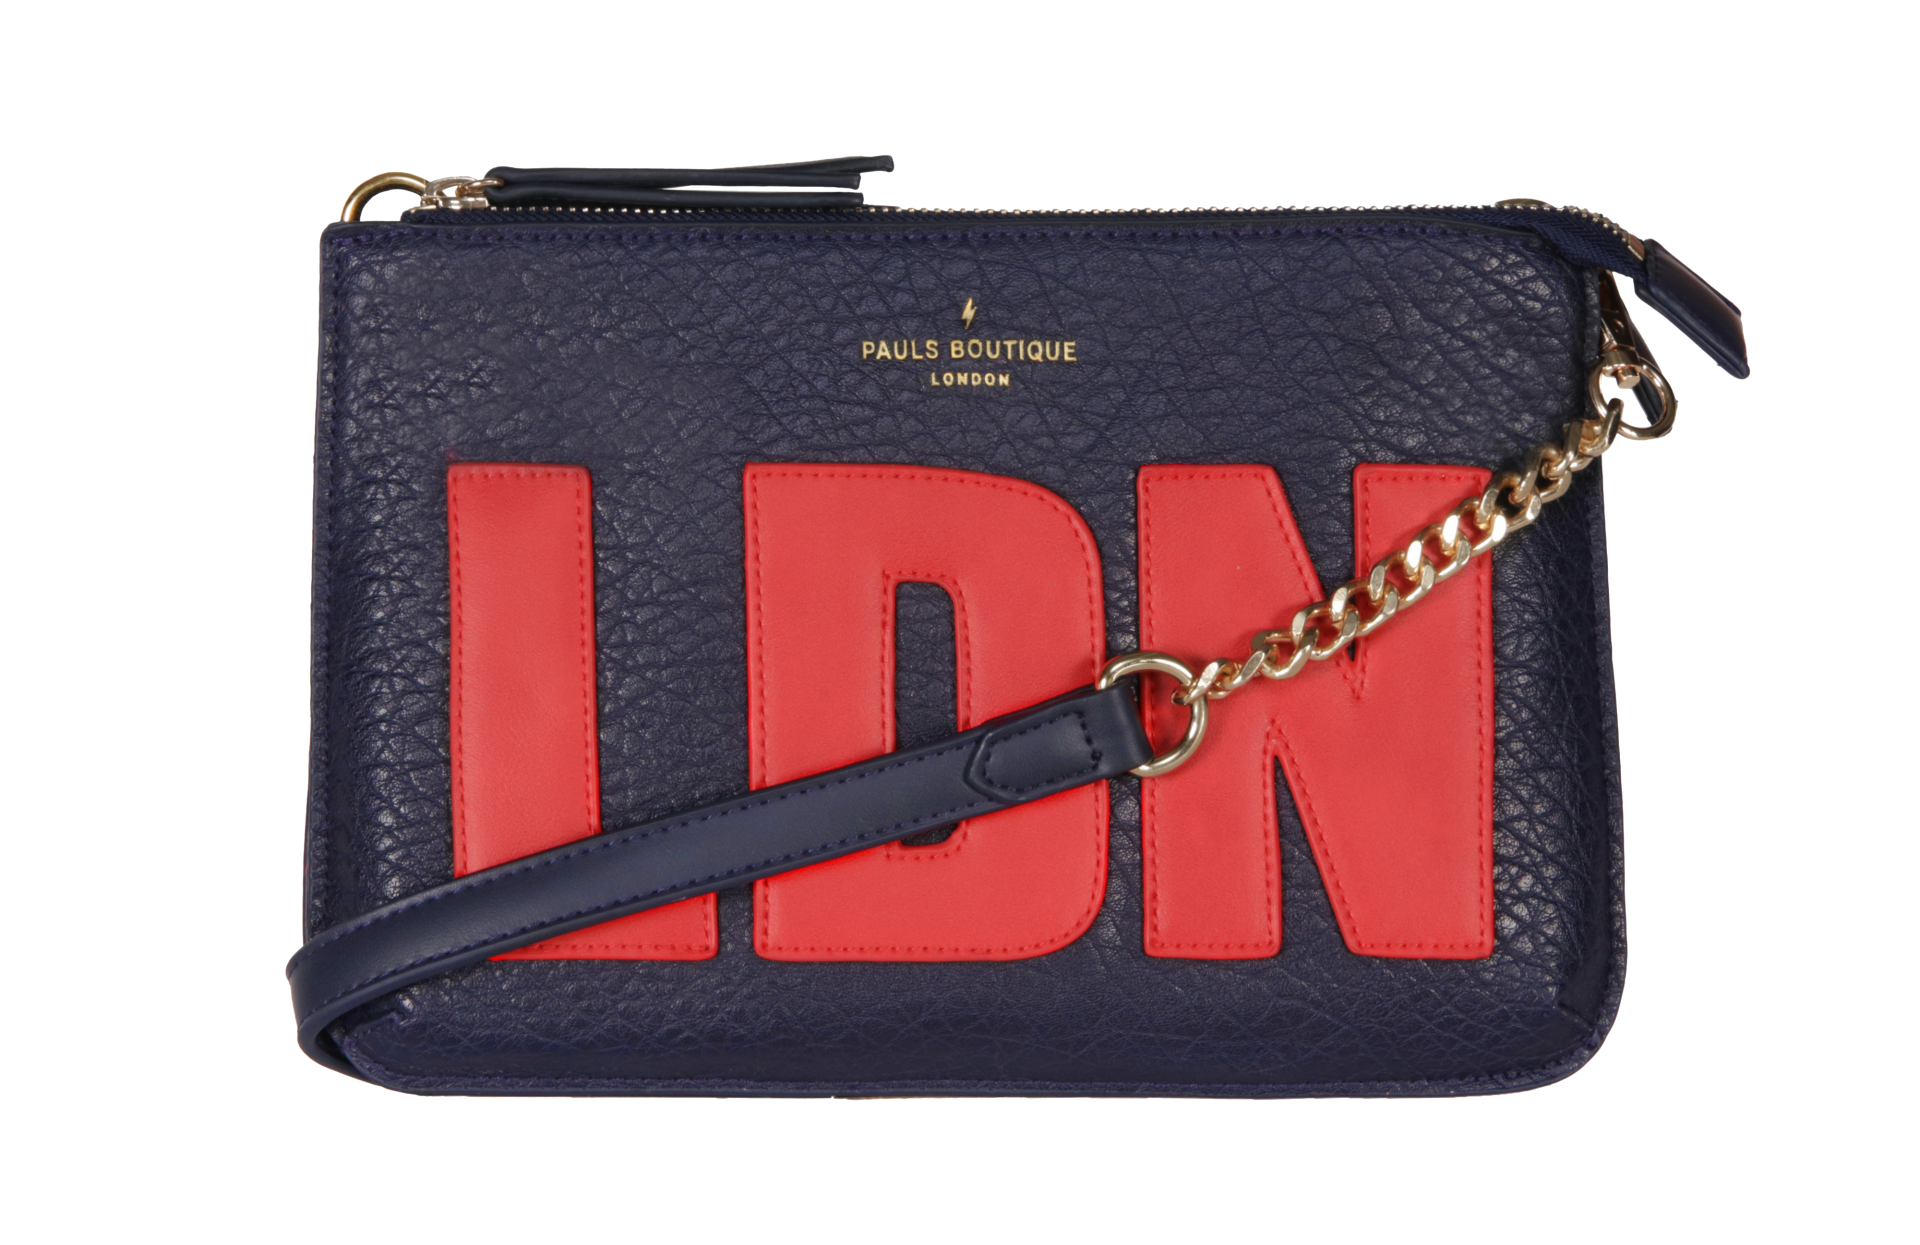 MALA PAULS BOUTIQUE PBN127311 NAVY/RED